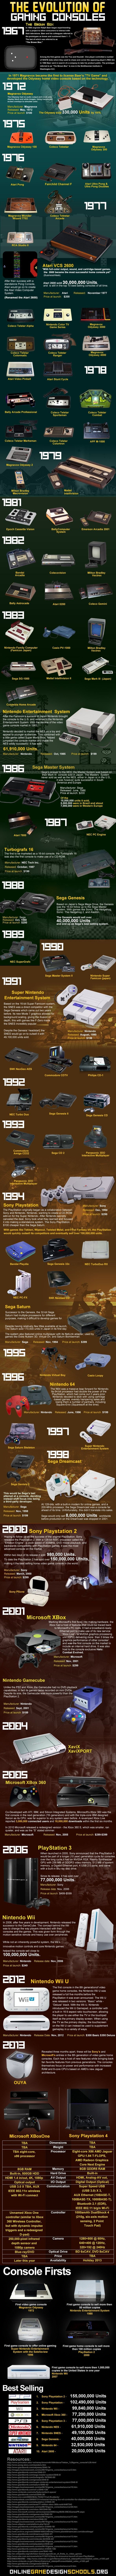 The Evolution of Gaming Consoles (1969 - 2013) This is cool!!